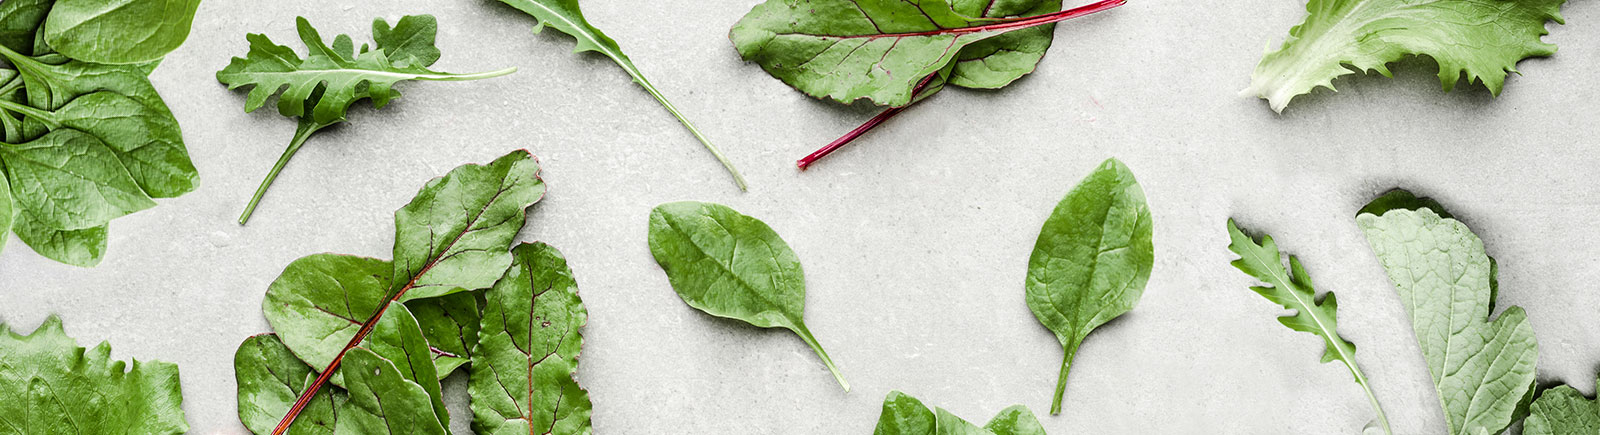 header image of leafy greens including spinach and lettuce